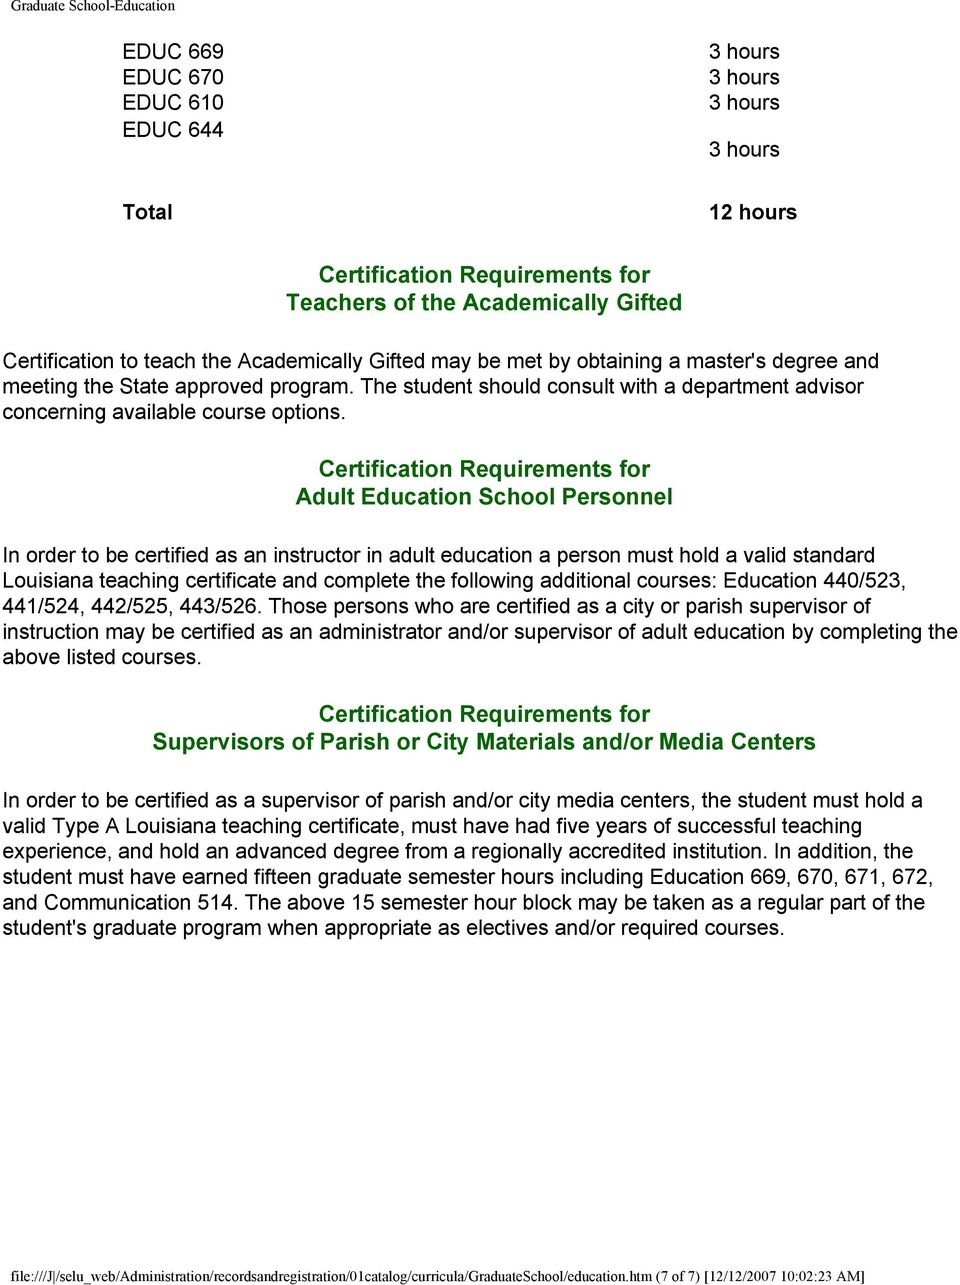 Certification Requirements for Adult Education School Personnel In order to be certified as an instructor in adult education a person must hold a valid standard Louisiana teaching certificate and